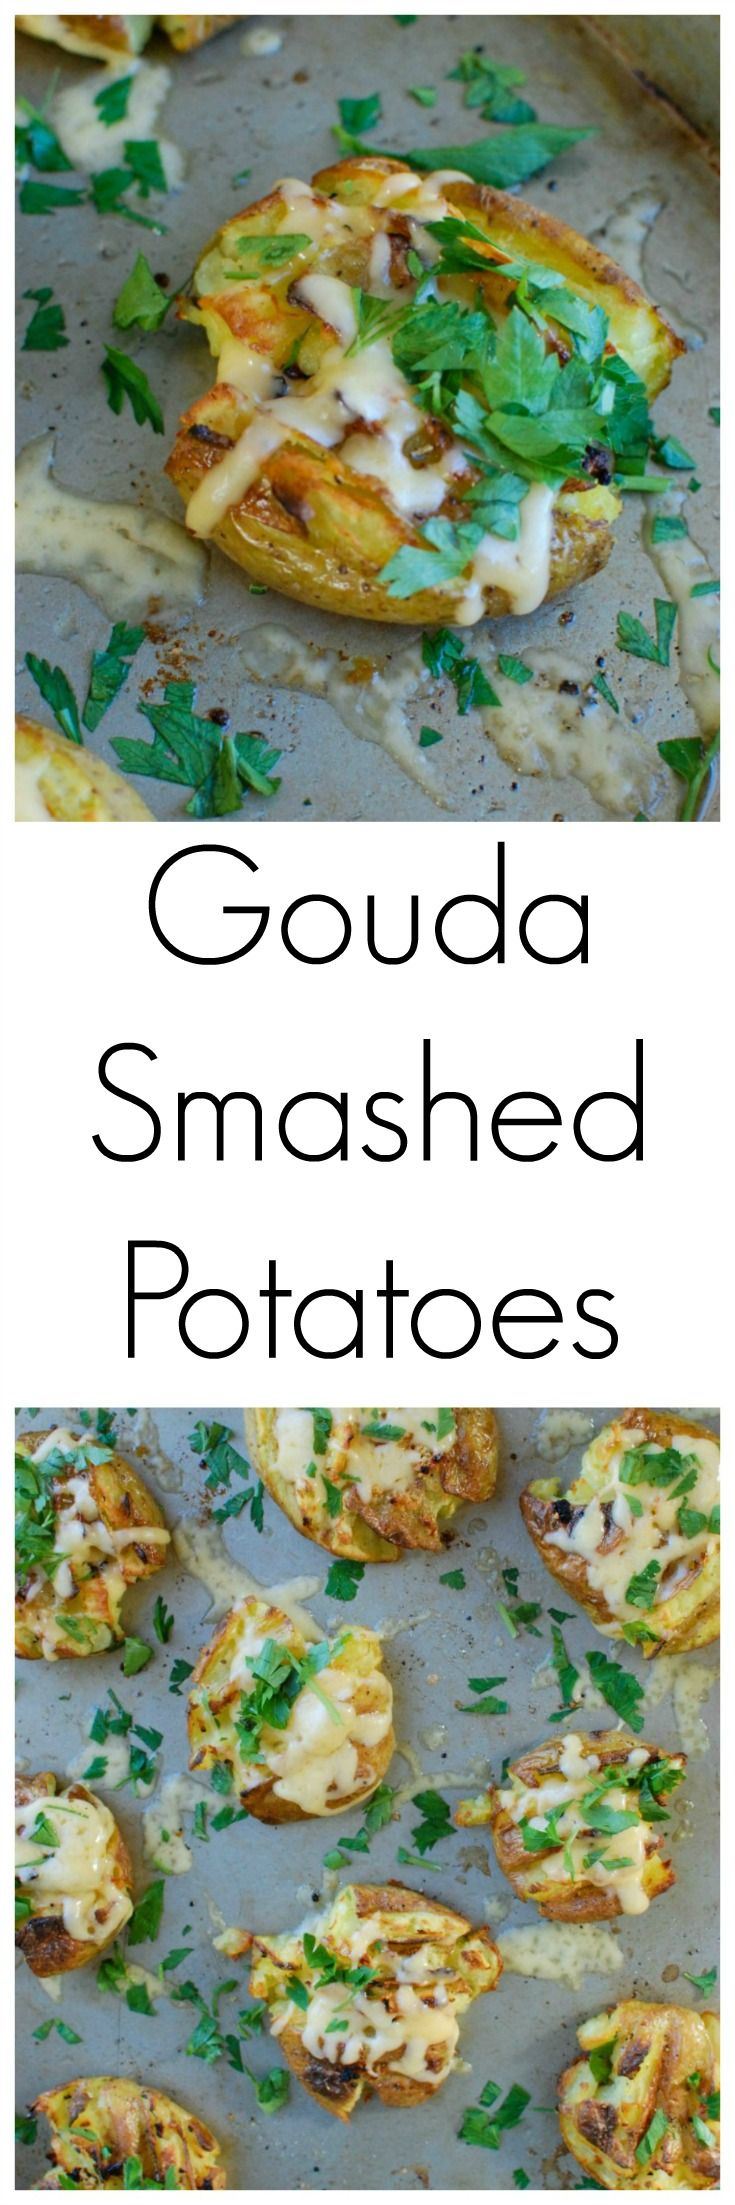 Golden potatoes are drizzled with olive oil and garlic and baked until crispy and then topped with gouda and warmed until the cheese is warm and melted. Gouda Smashed Potatoes are the perfect holiday side dish that will impress your guests. //  A Cedar Spoon